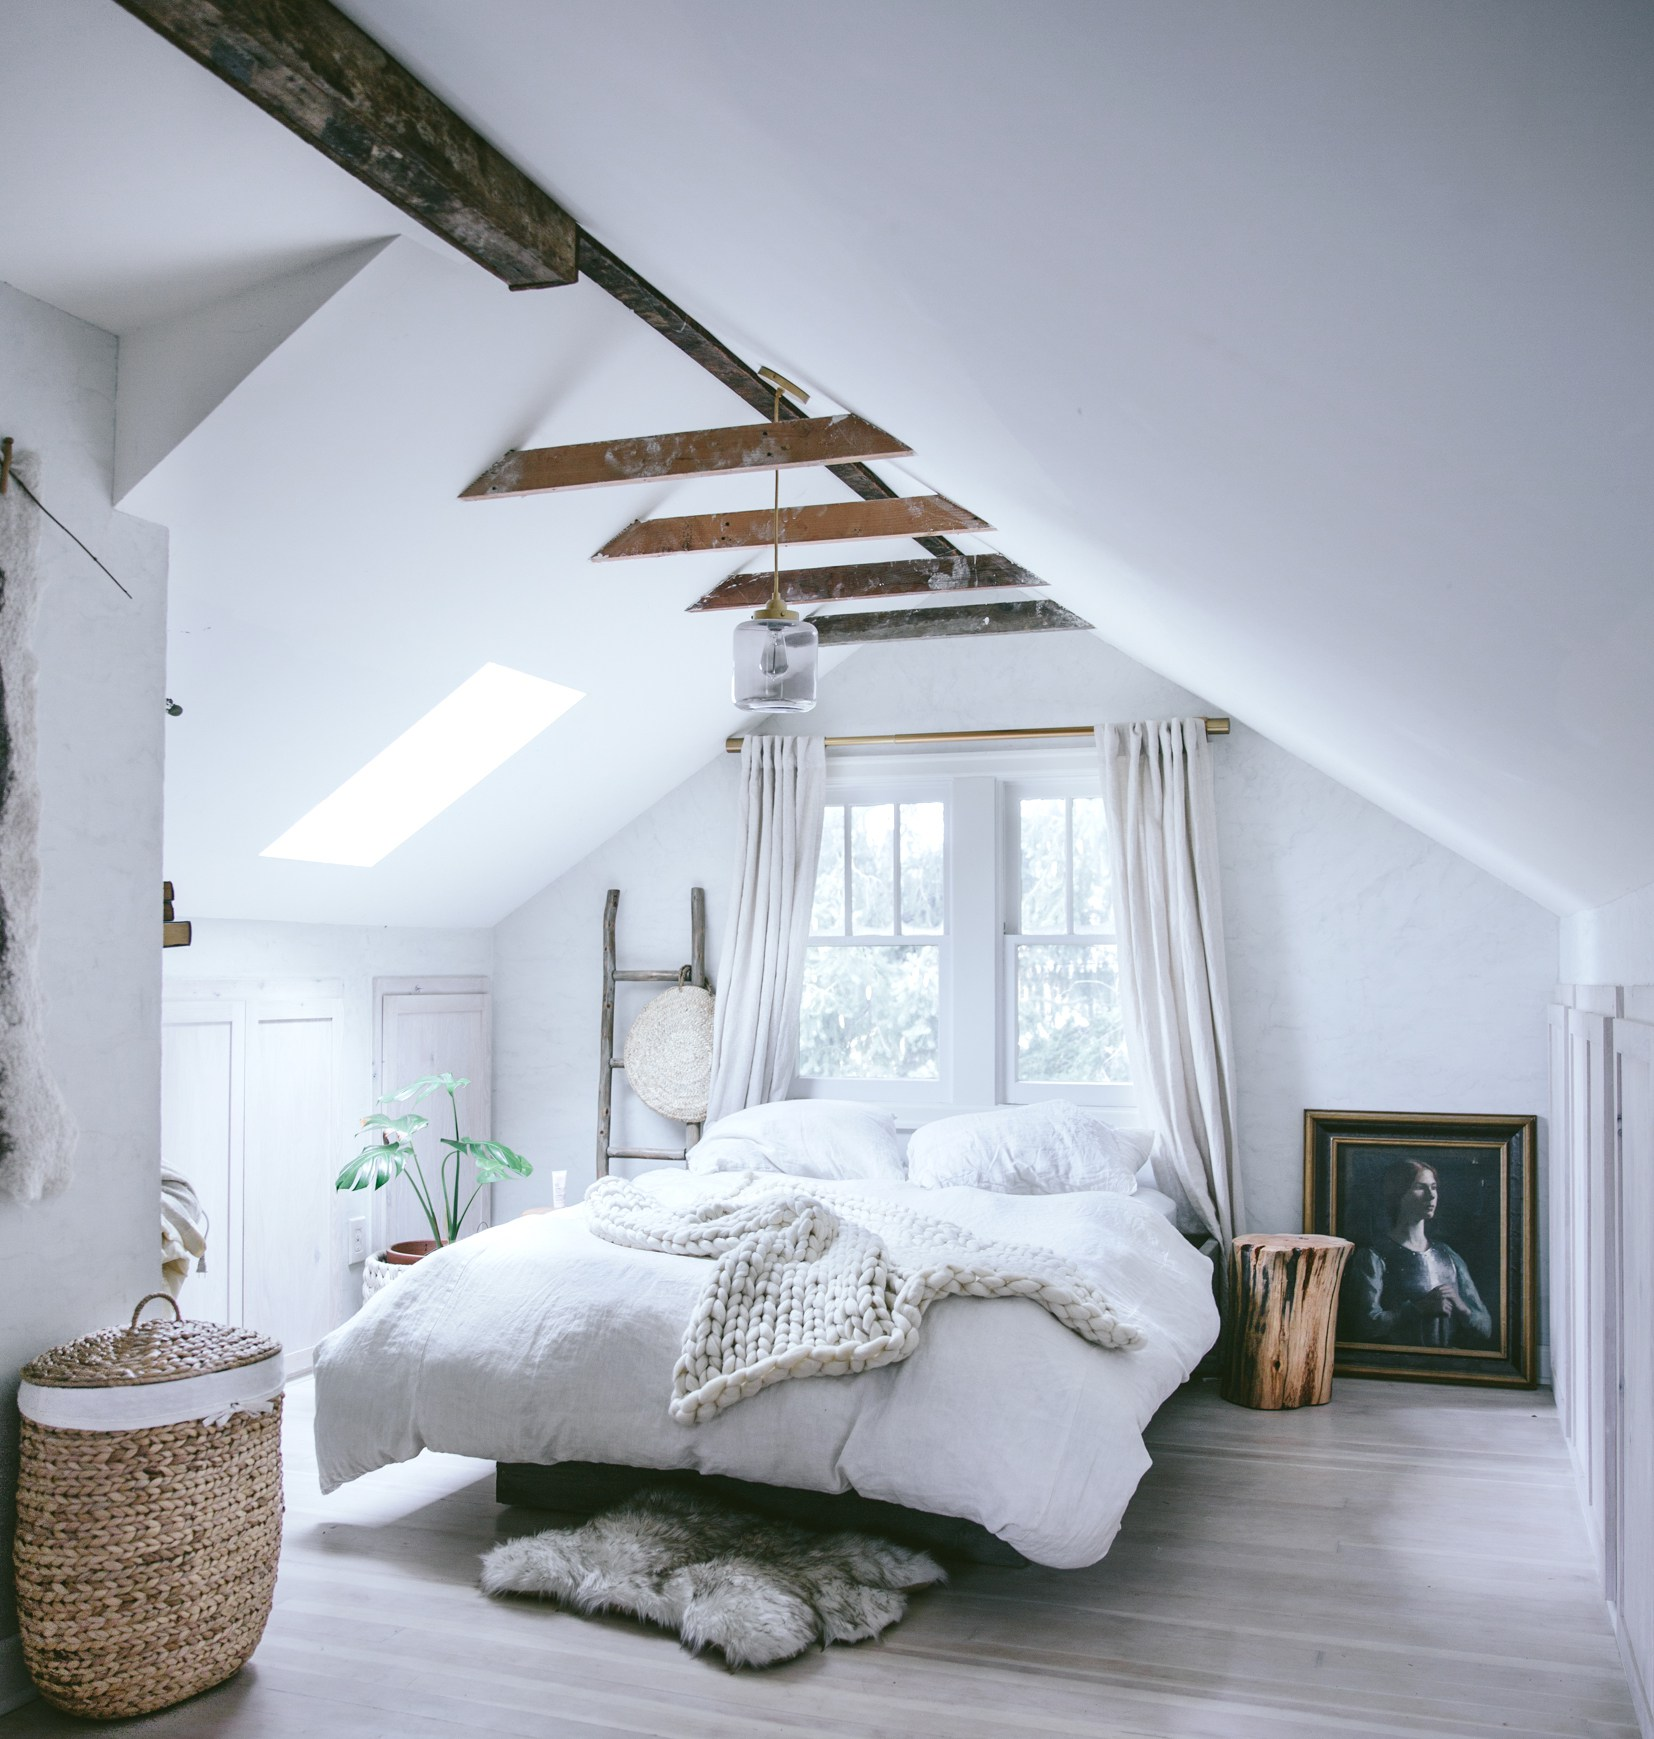 8 Cozy Attic Bedrooms Lofts & 8 Cozy Attic Bedrooms Lofts -